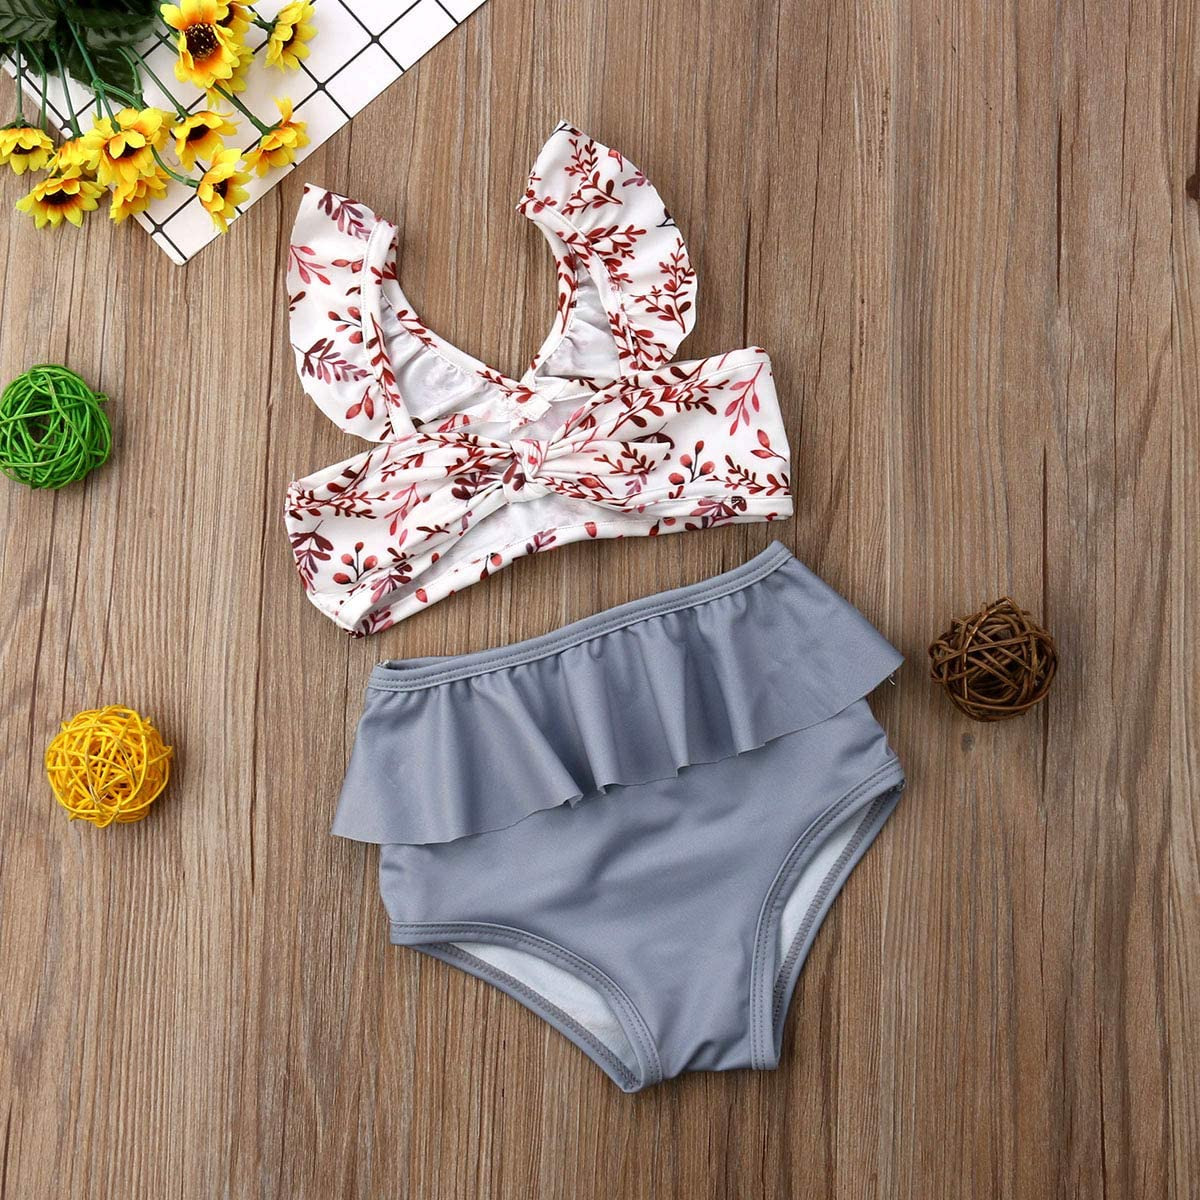 Newborn Toddler Girls 2Pcs Swimsuits Flying Sleeve Tube Tops High Waisted Ruffle Bottoms Bathing Suits Summer Outfits